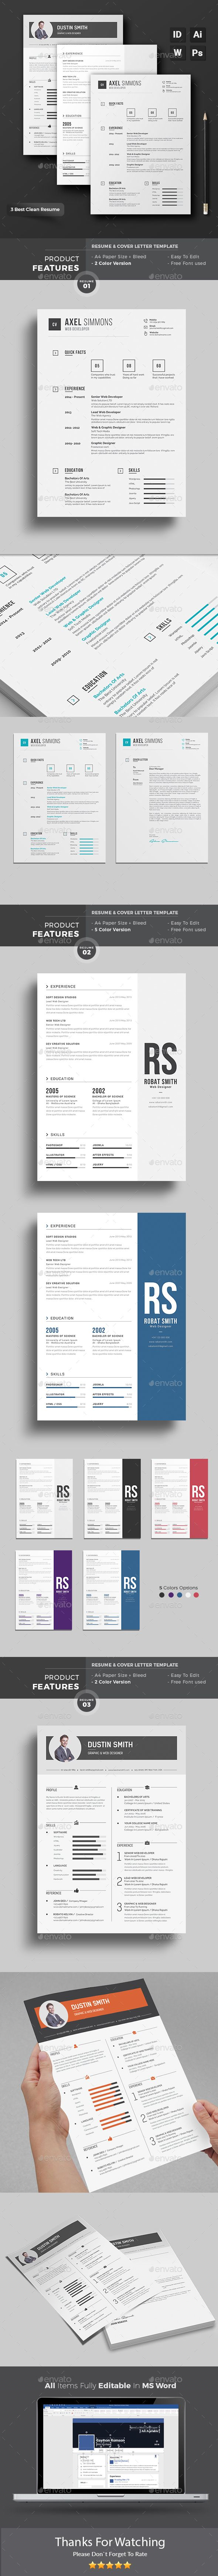 MS Word Resume Creative Cv TemplateModern